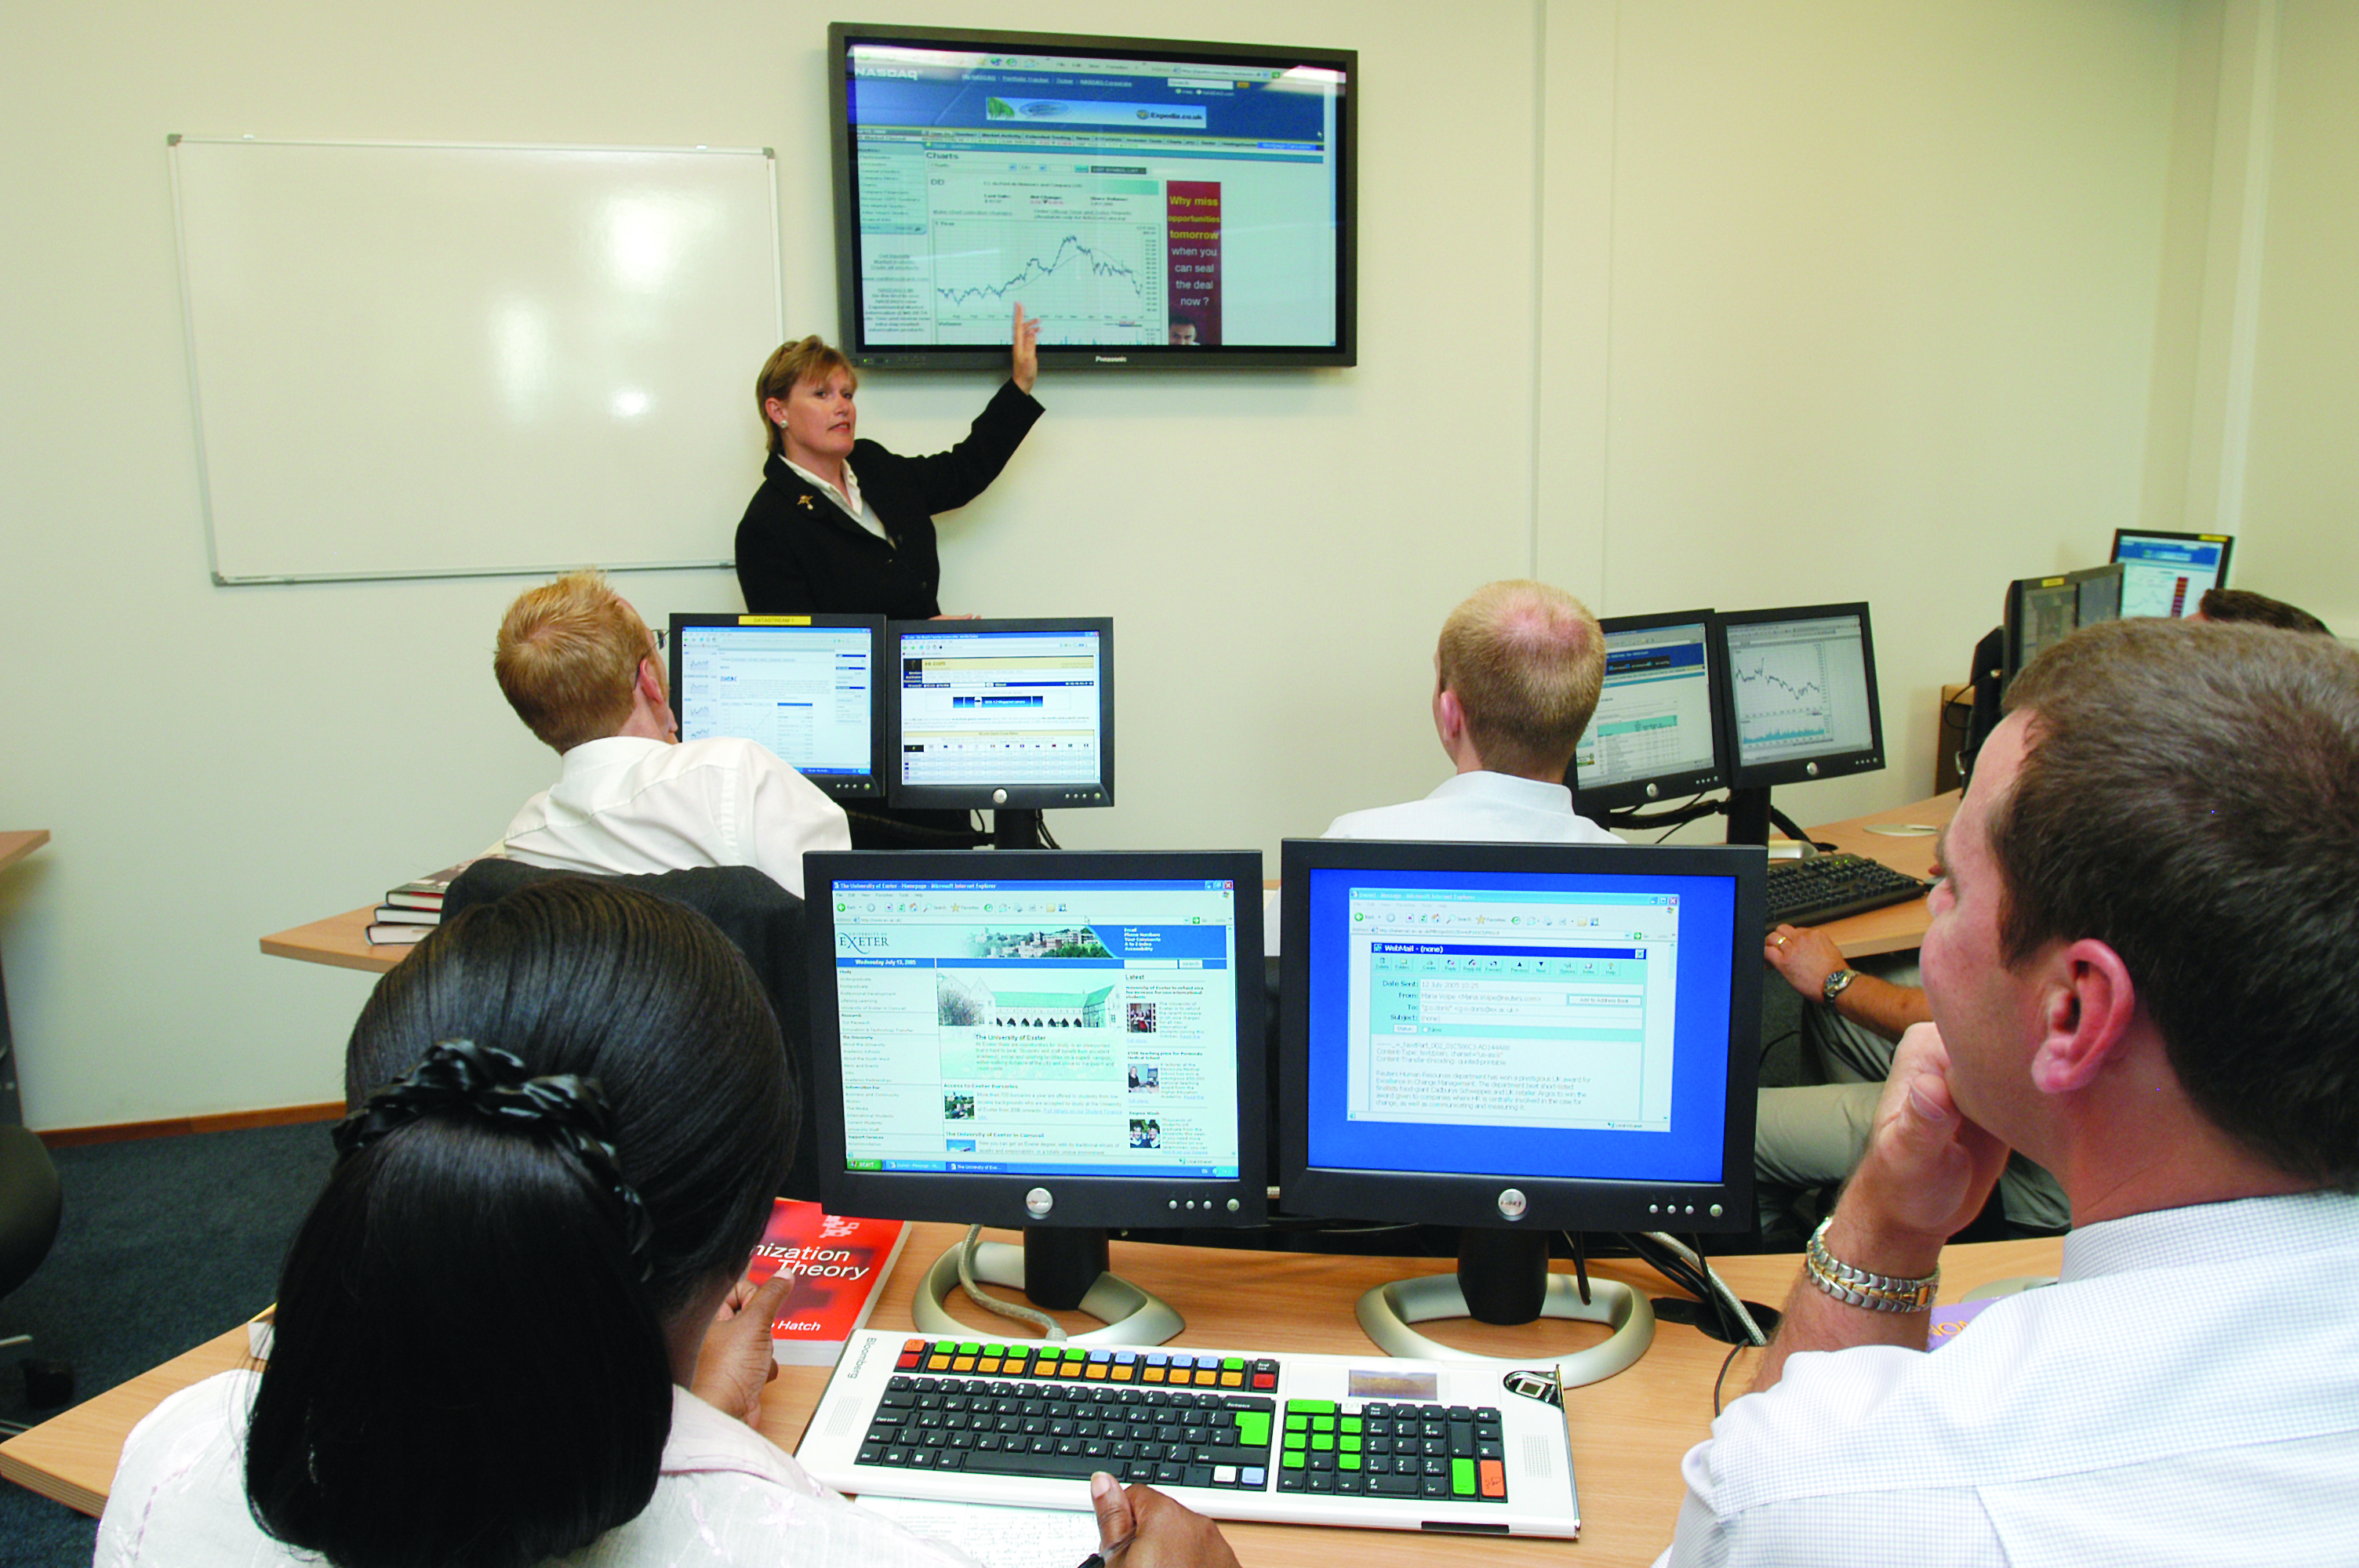 Teacher explains financial graph to students in University of Exeter classroom